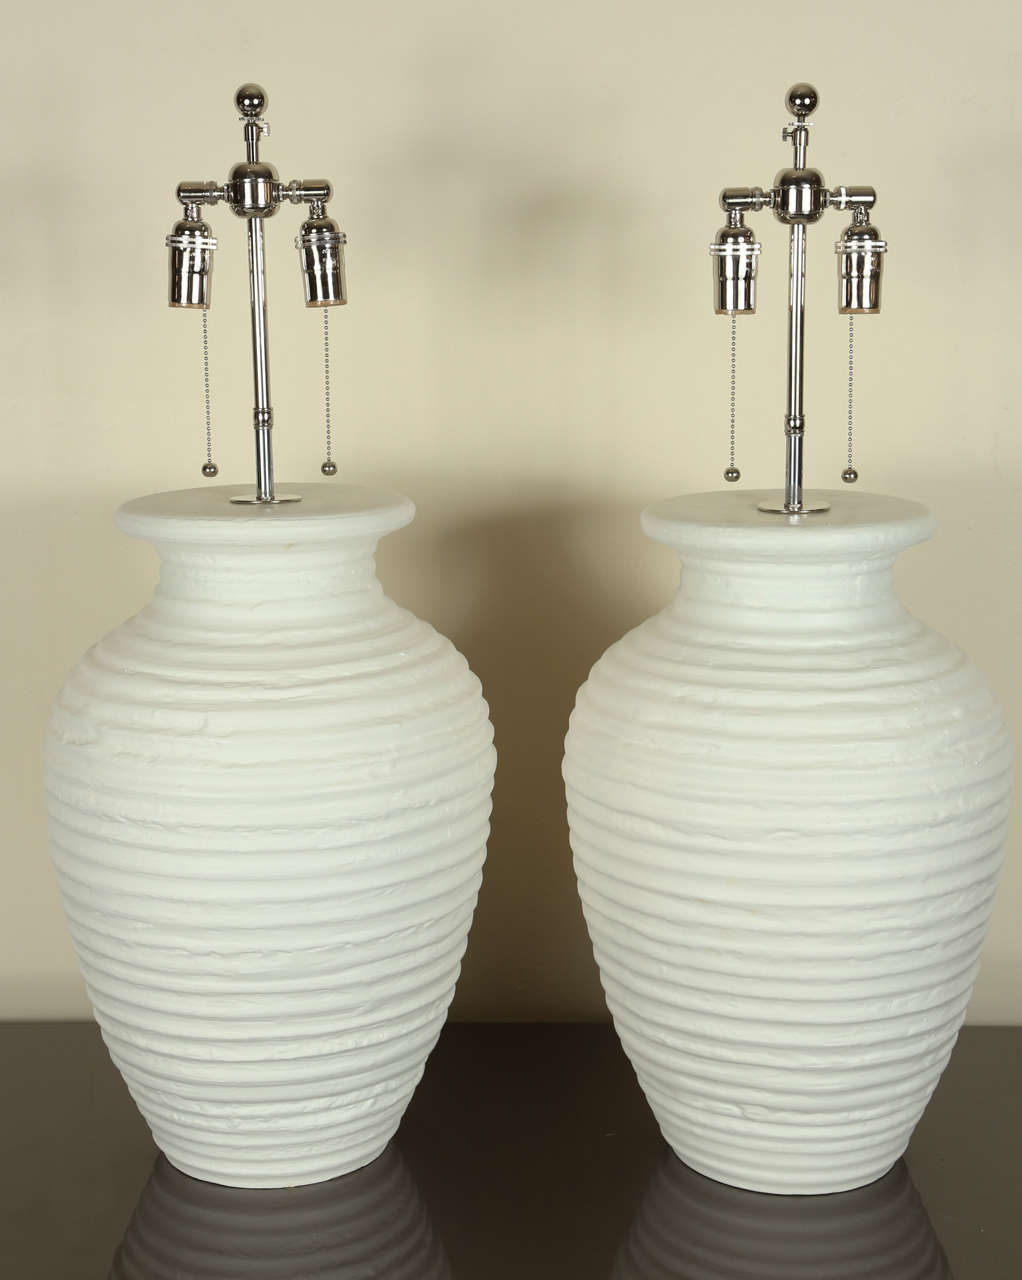 Large Pair Of Urn Shaped Ceramic Table Lamps With A Matte